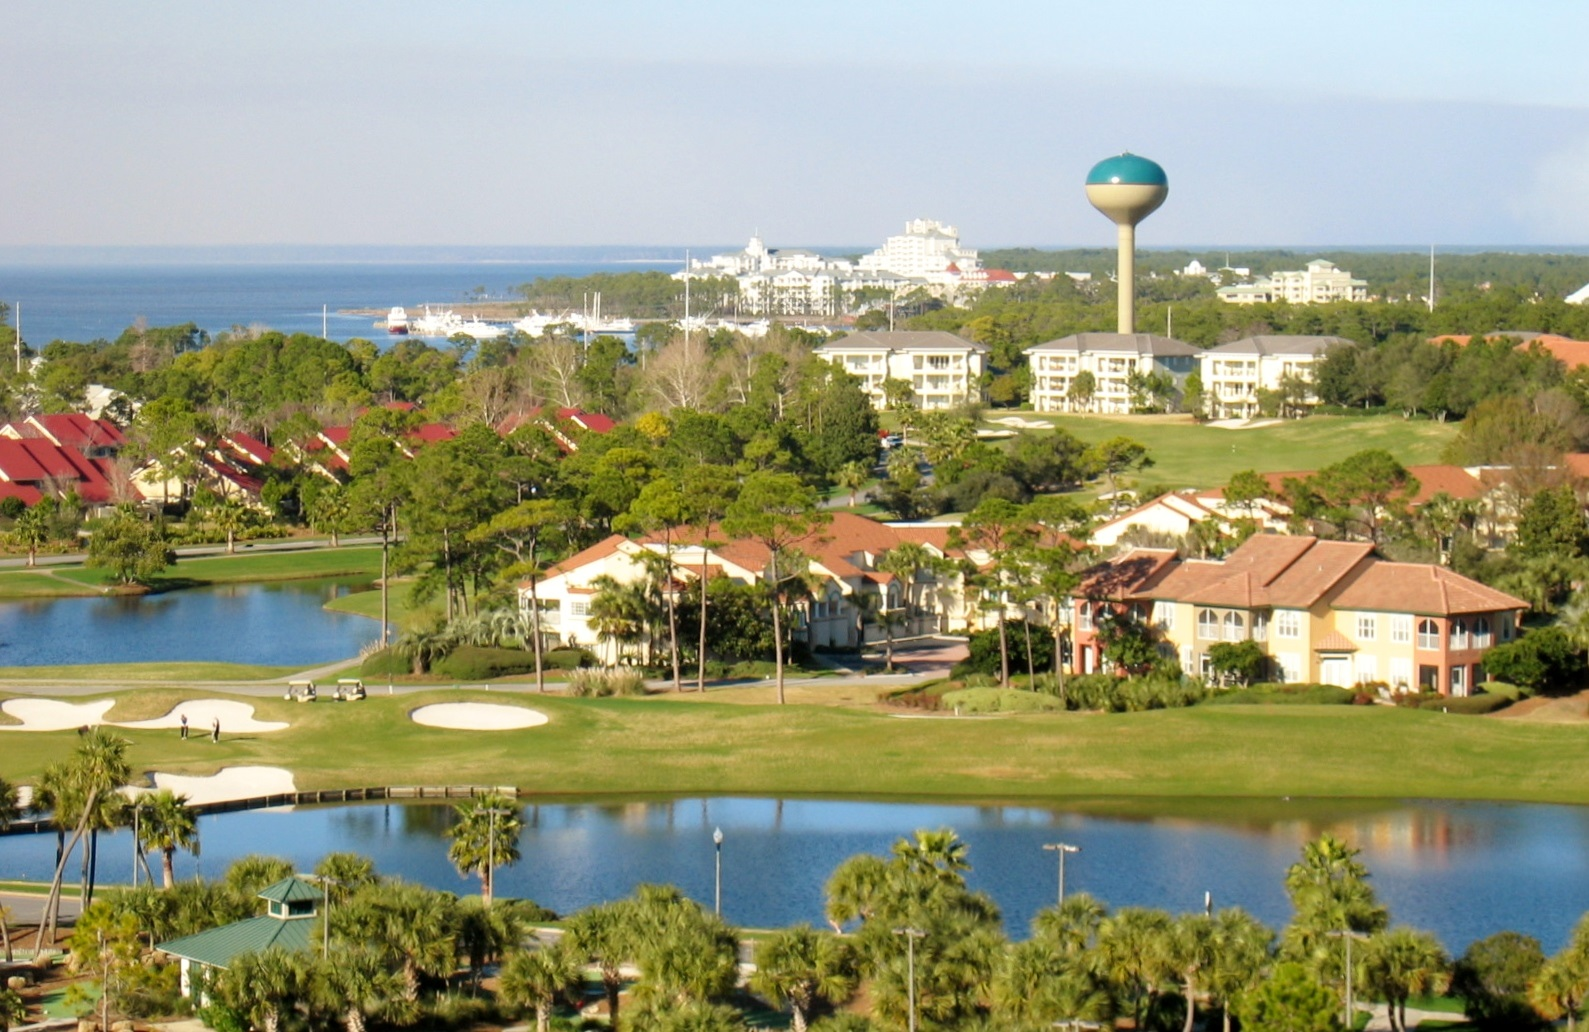 The Sandestin Golf & Beach Resort